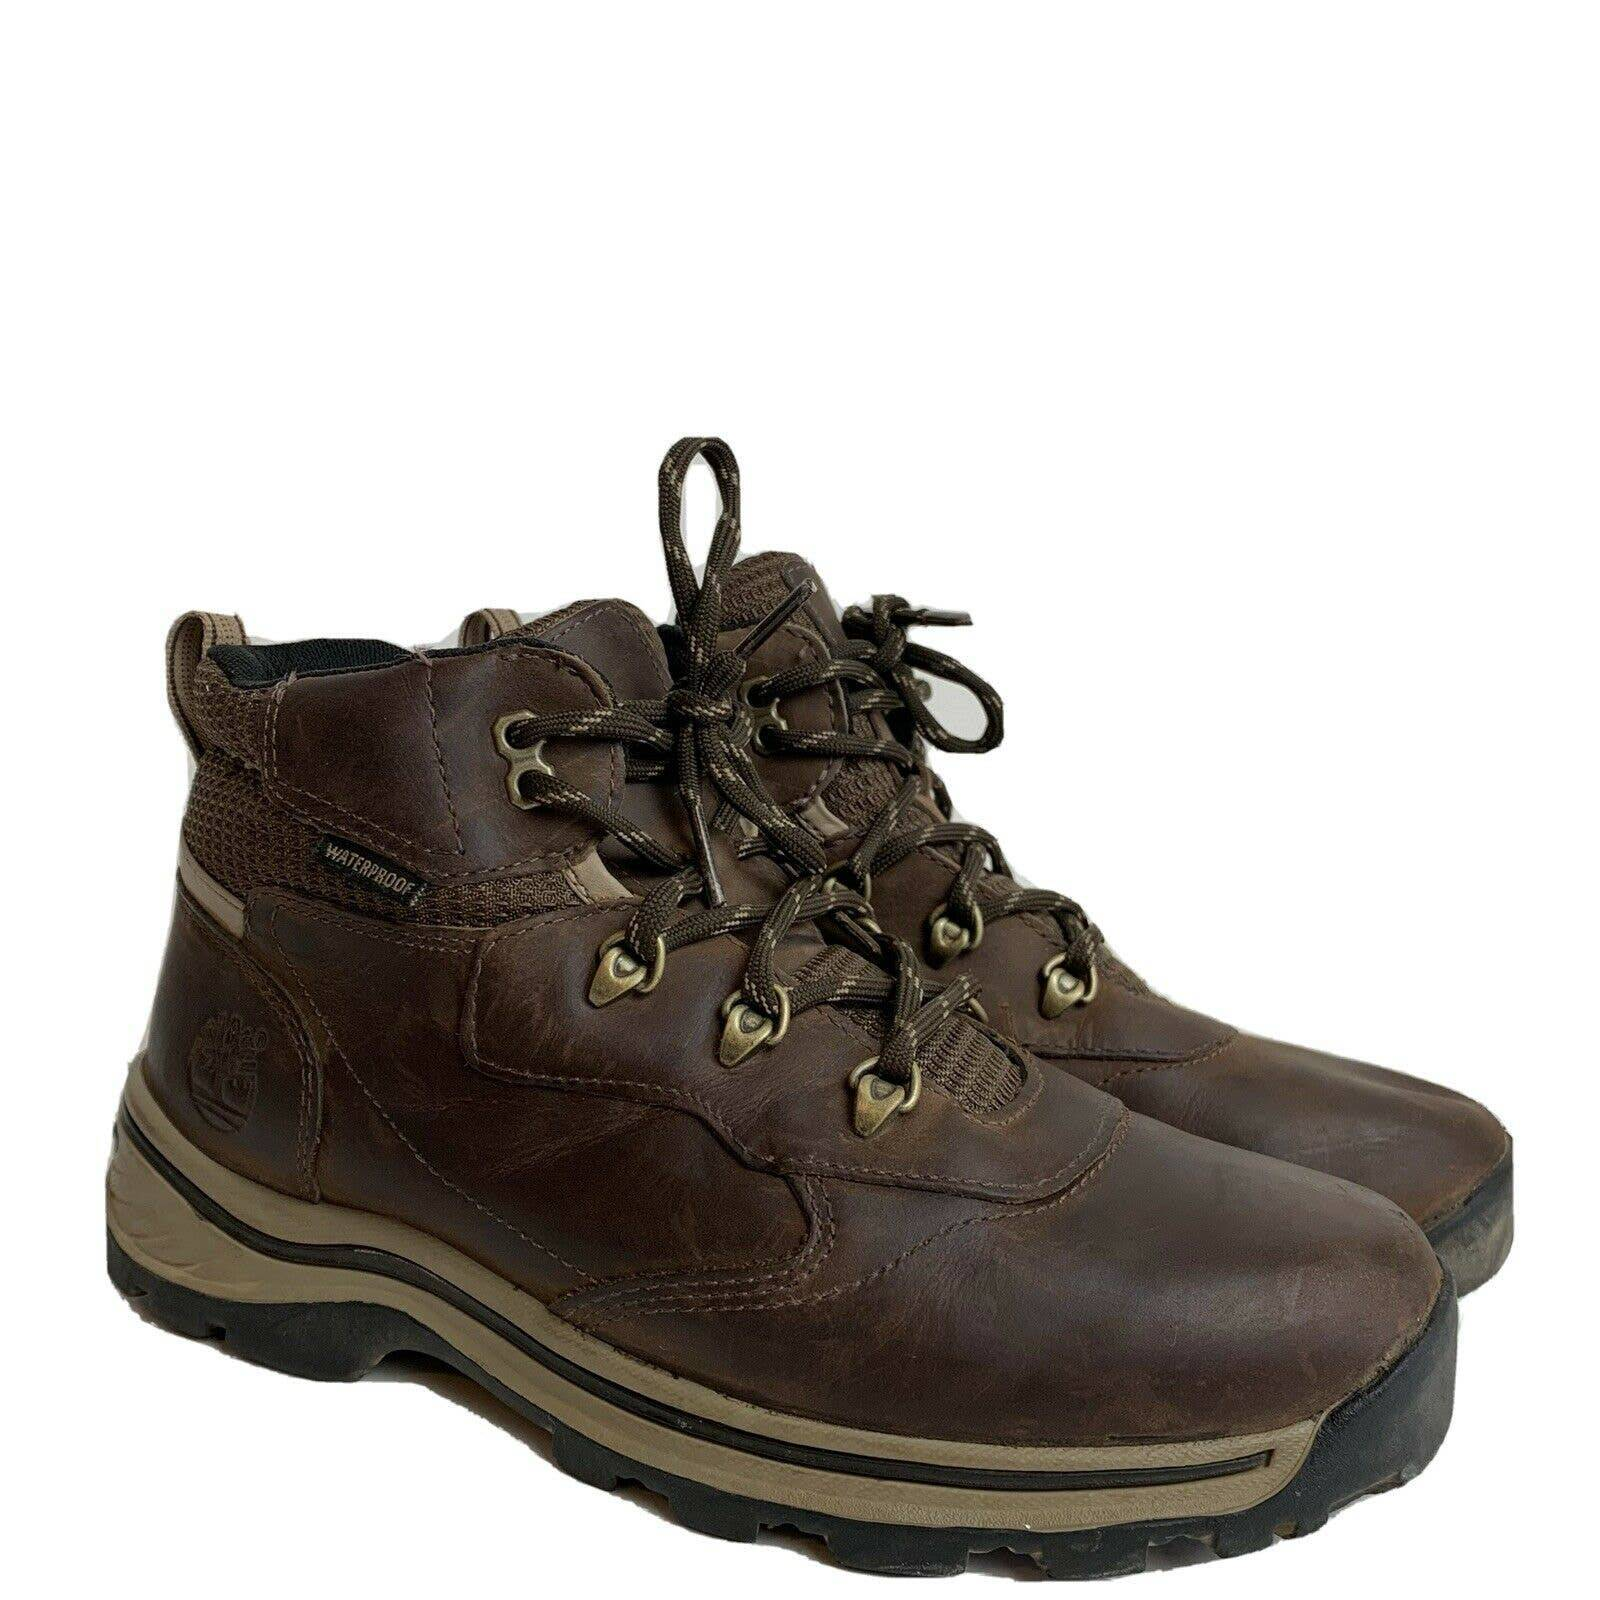 Timberland Brown Leather Waterproof Boot